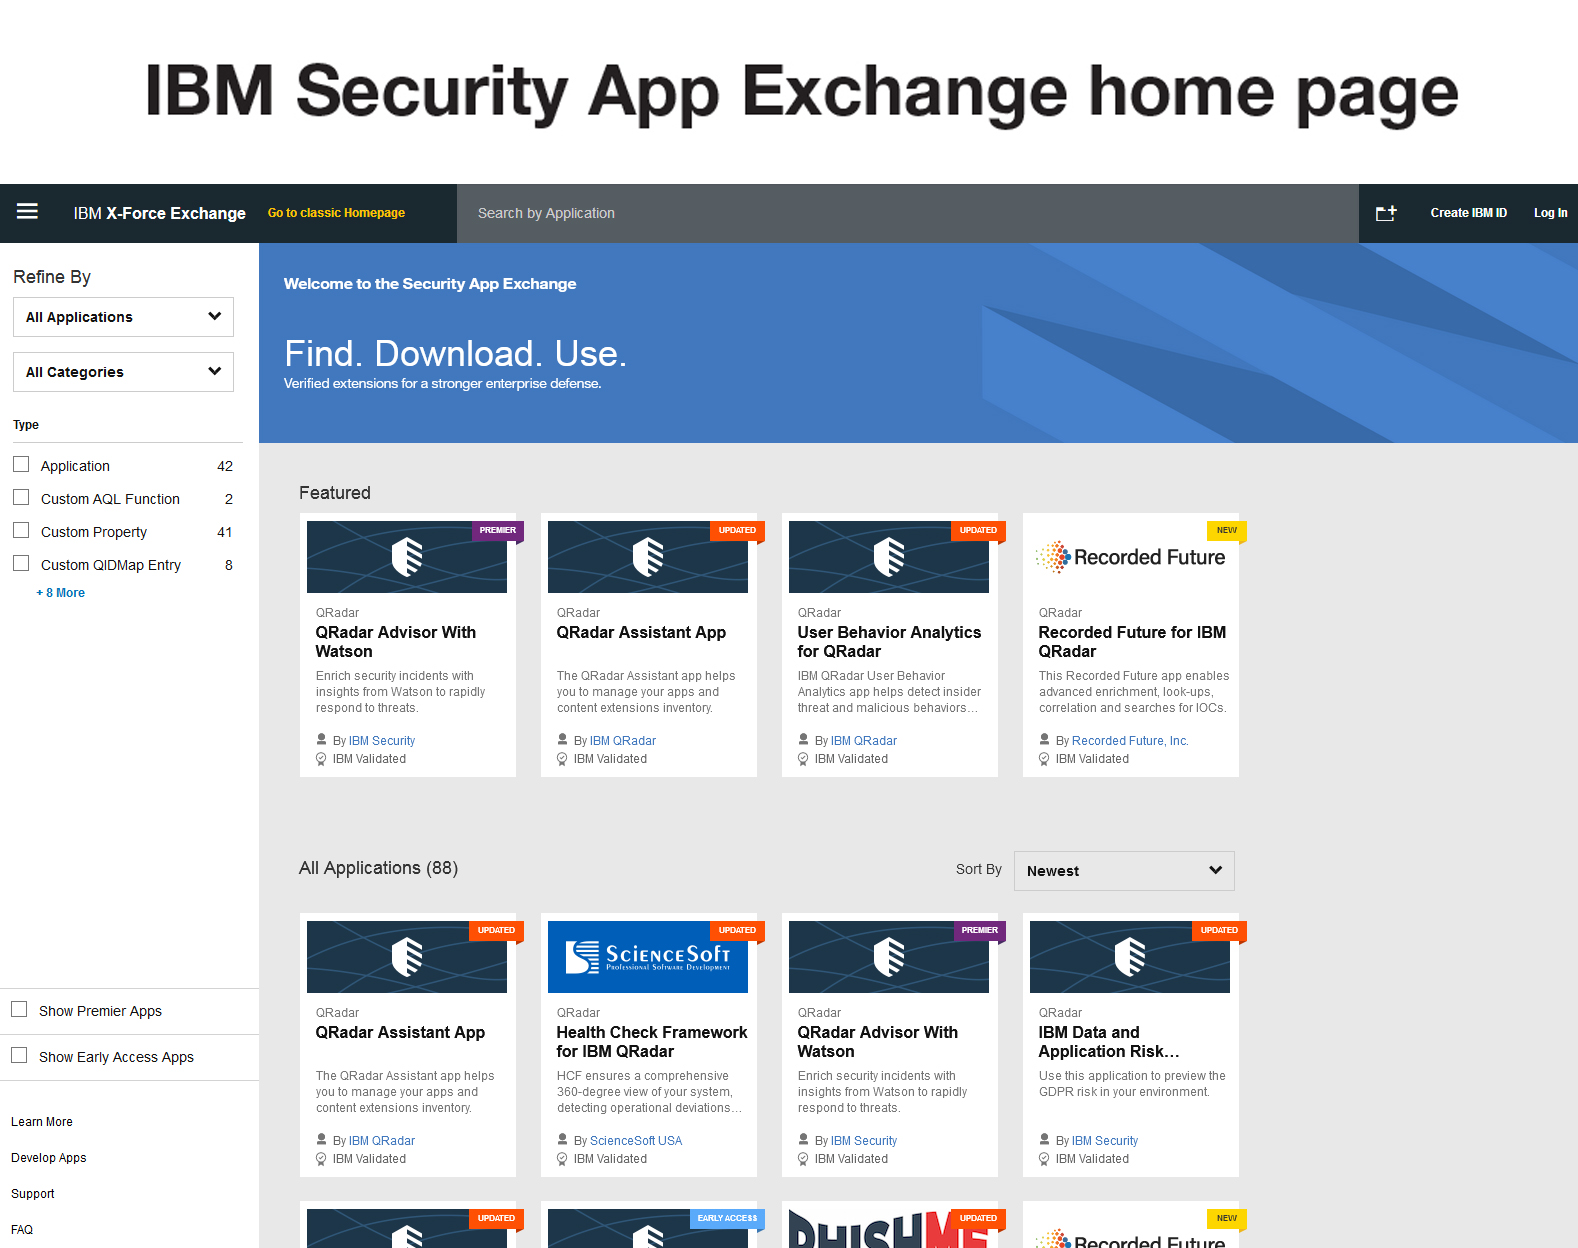 ibm security dating apps Ibm security researchers said 26 of 41 dating apps they analyzed on google's android mobile platform had medium or high severity vulnerabilities, in a report published on wednesday.